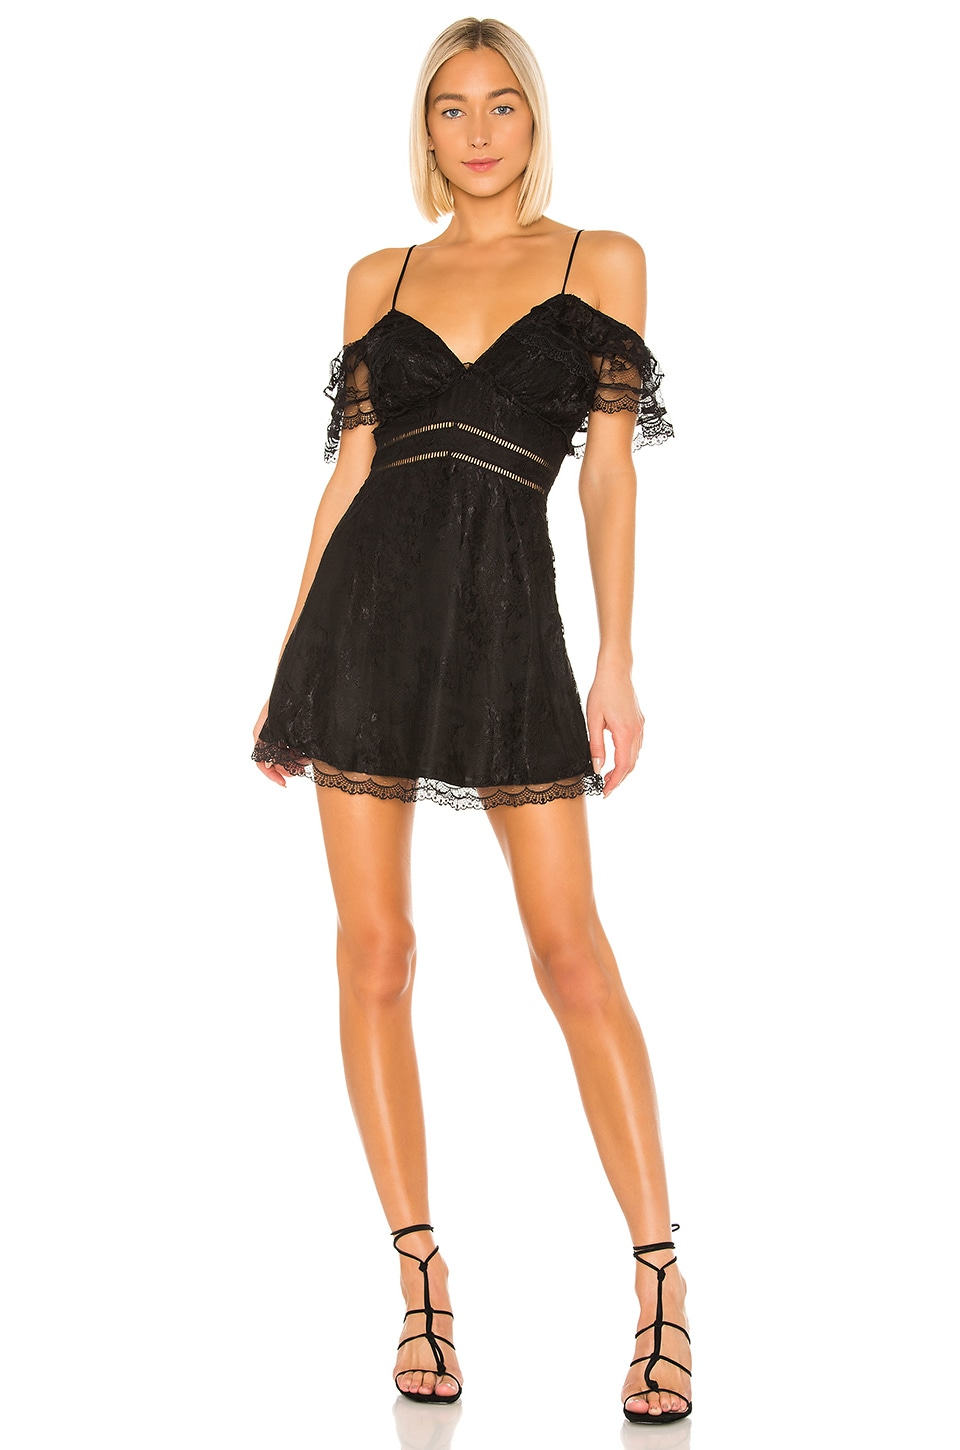 House of Harlow 1960 X REVOLVE Devi Dress in Noir